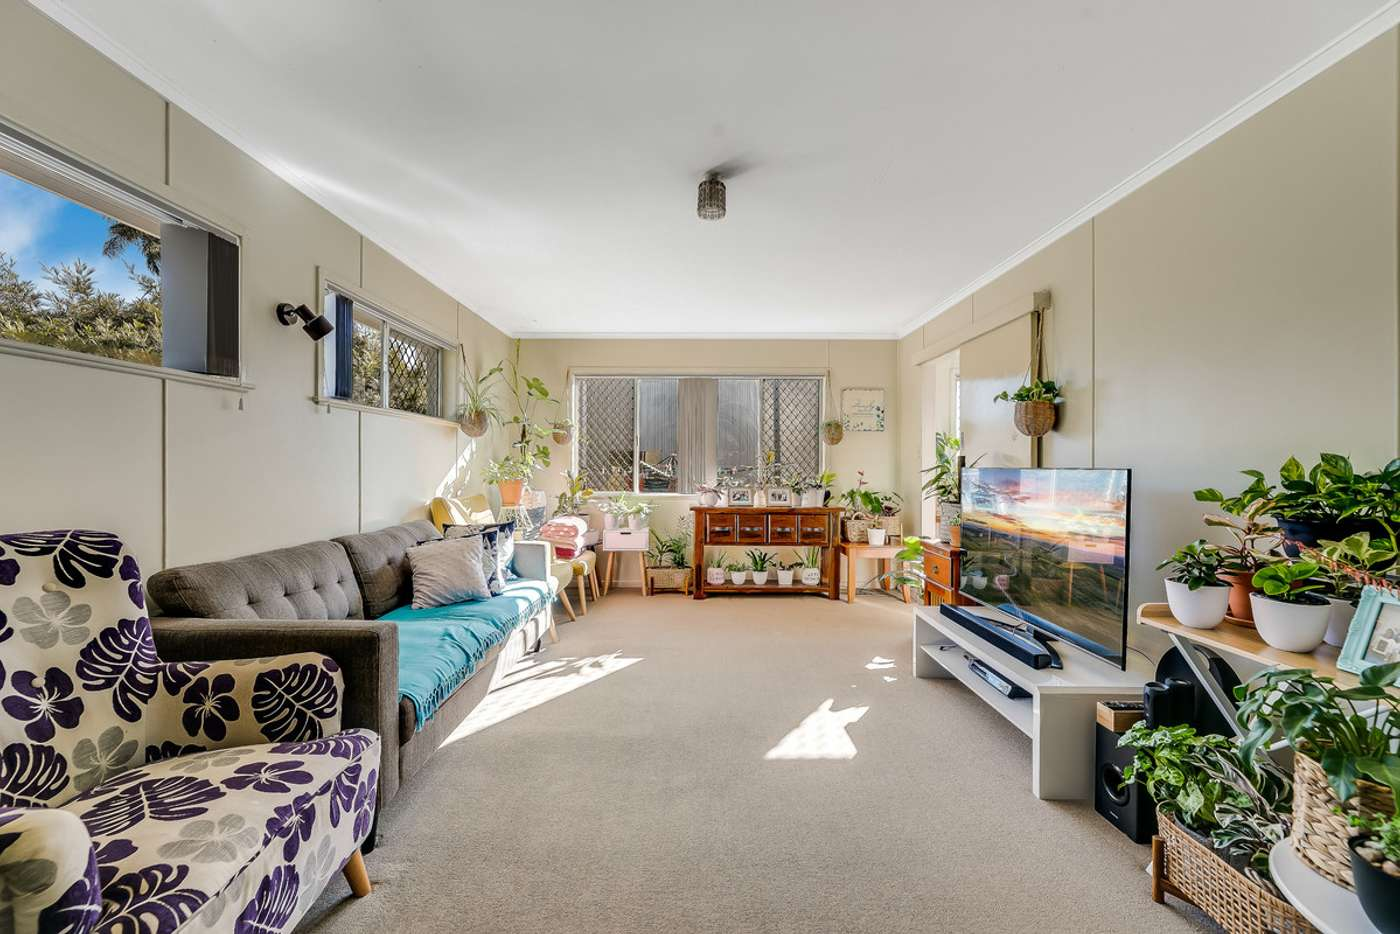 Fifth view of Homely house listing, 421 Stenner Street, Harristown QLD 4350